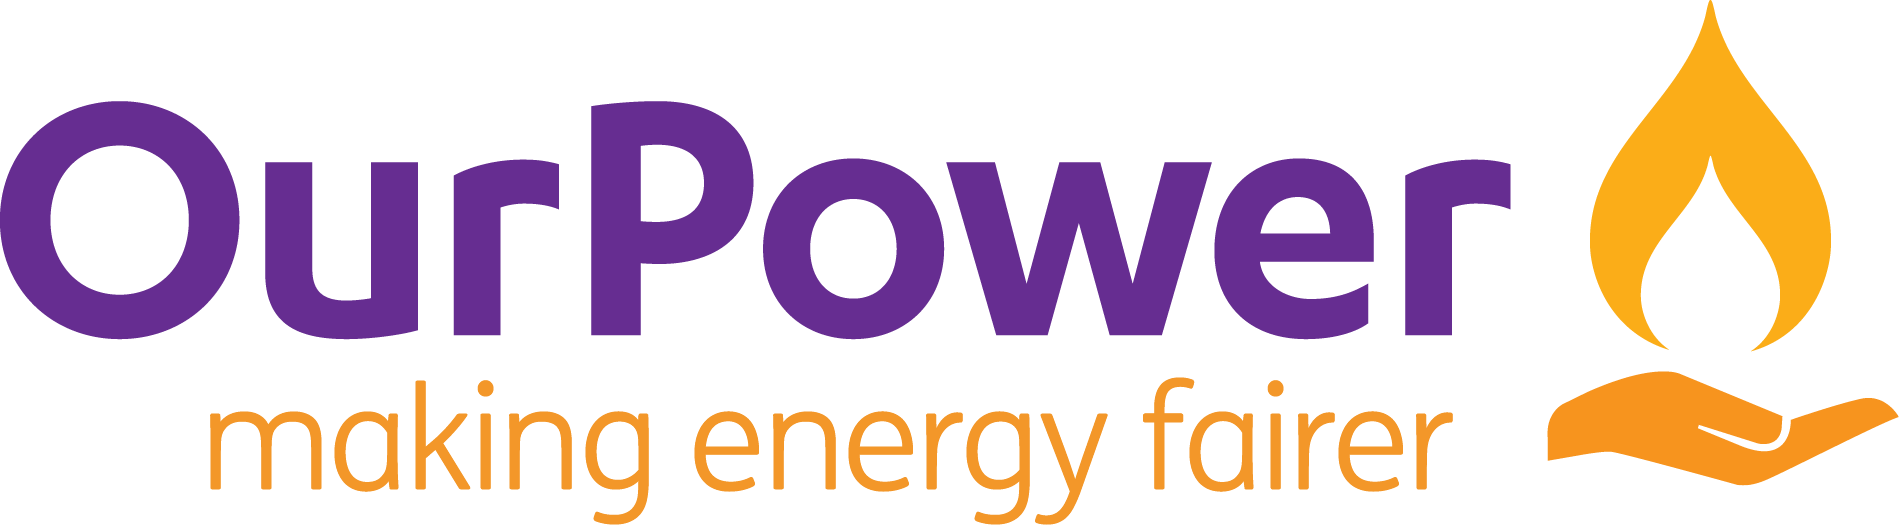 Our Power Community Benefit Society